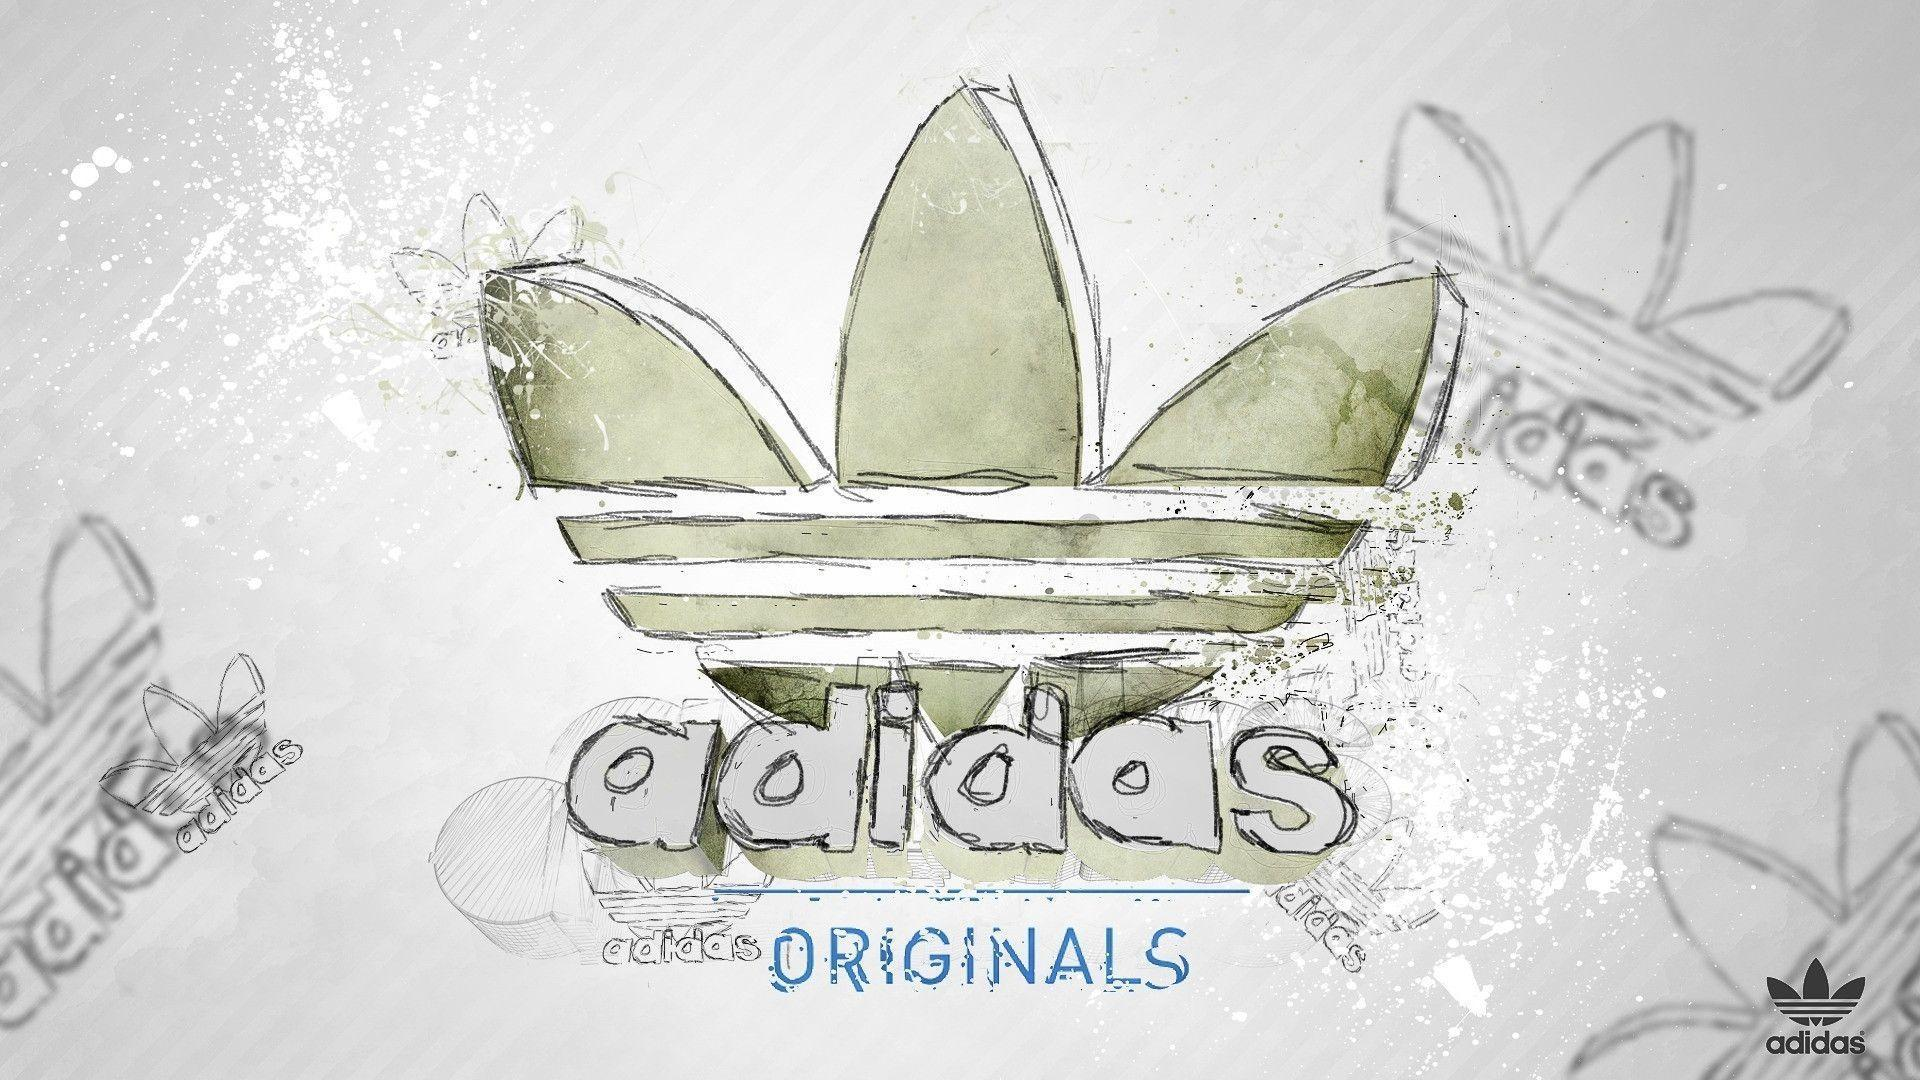 Adidas Original Wallpaper | HD Wallpapers Football Club